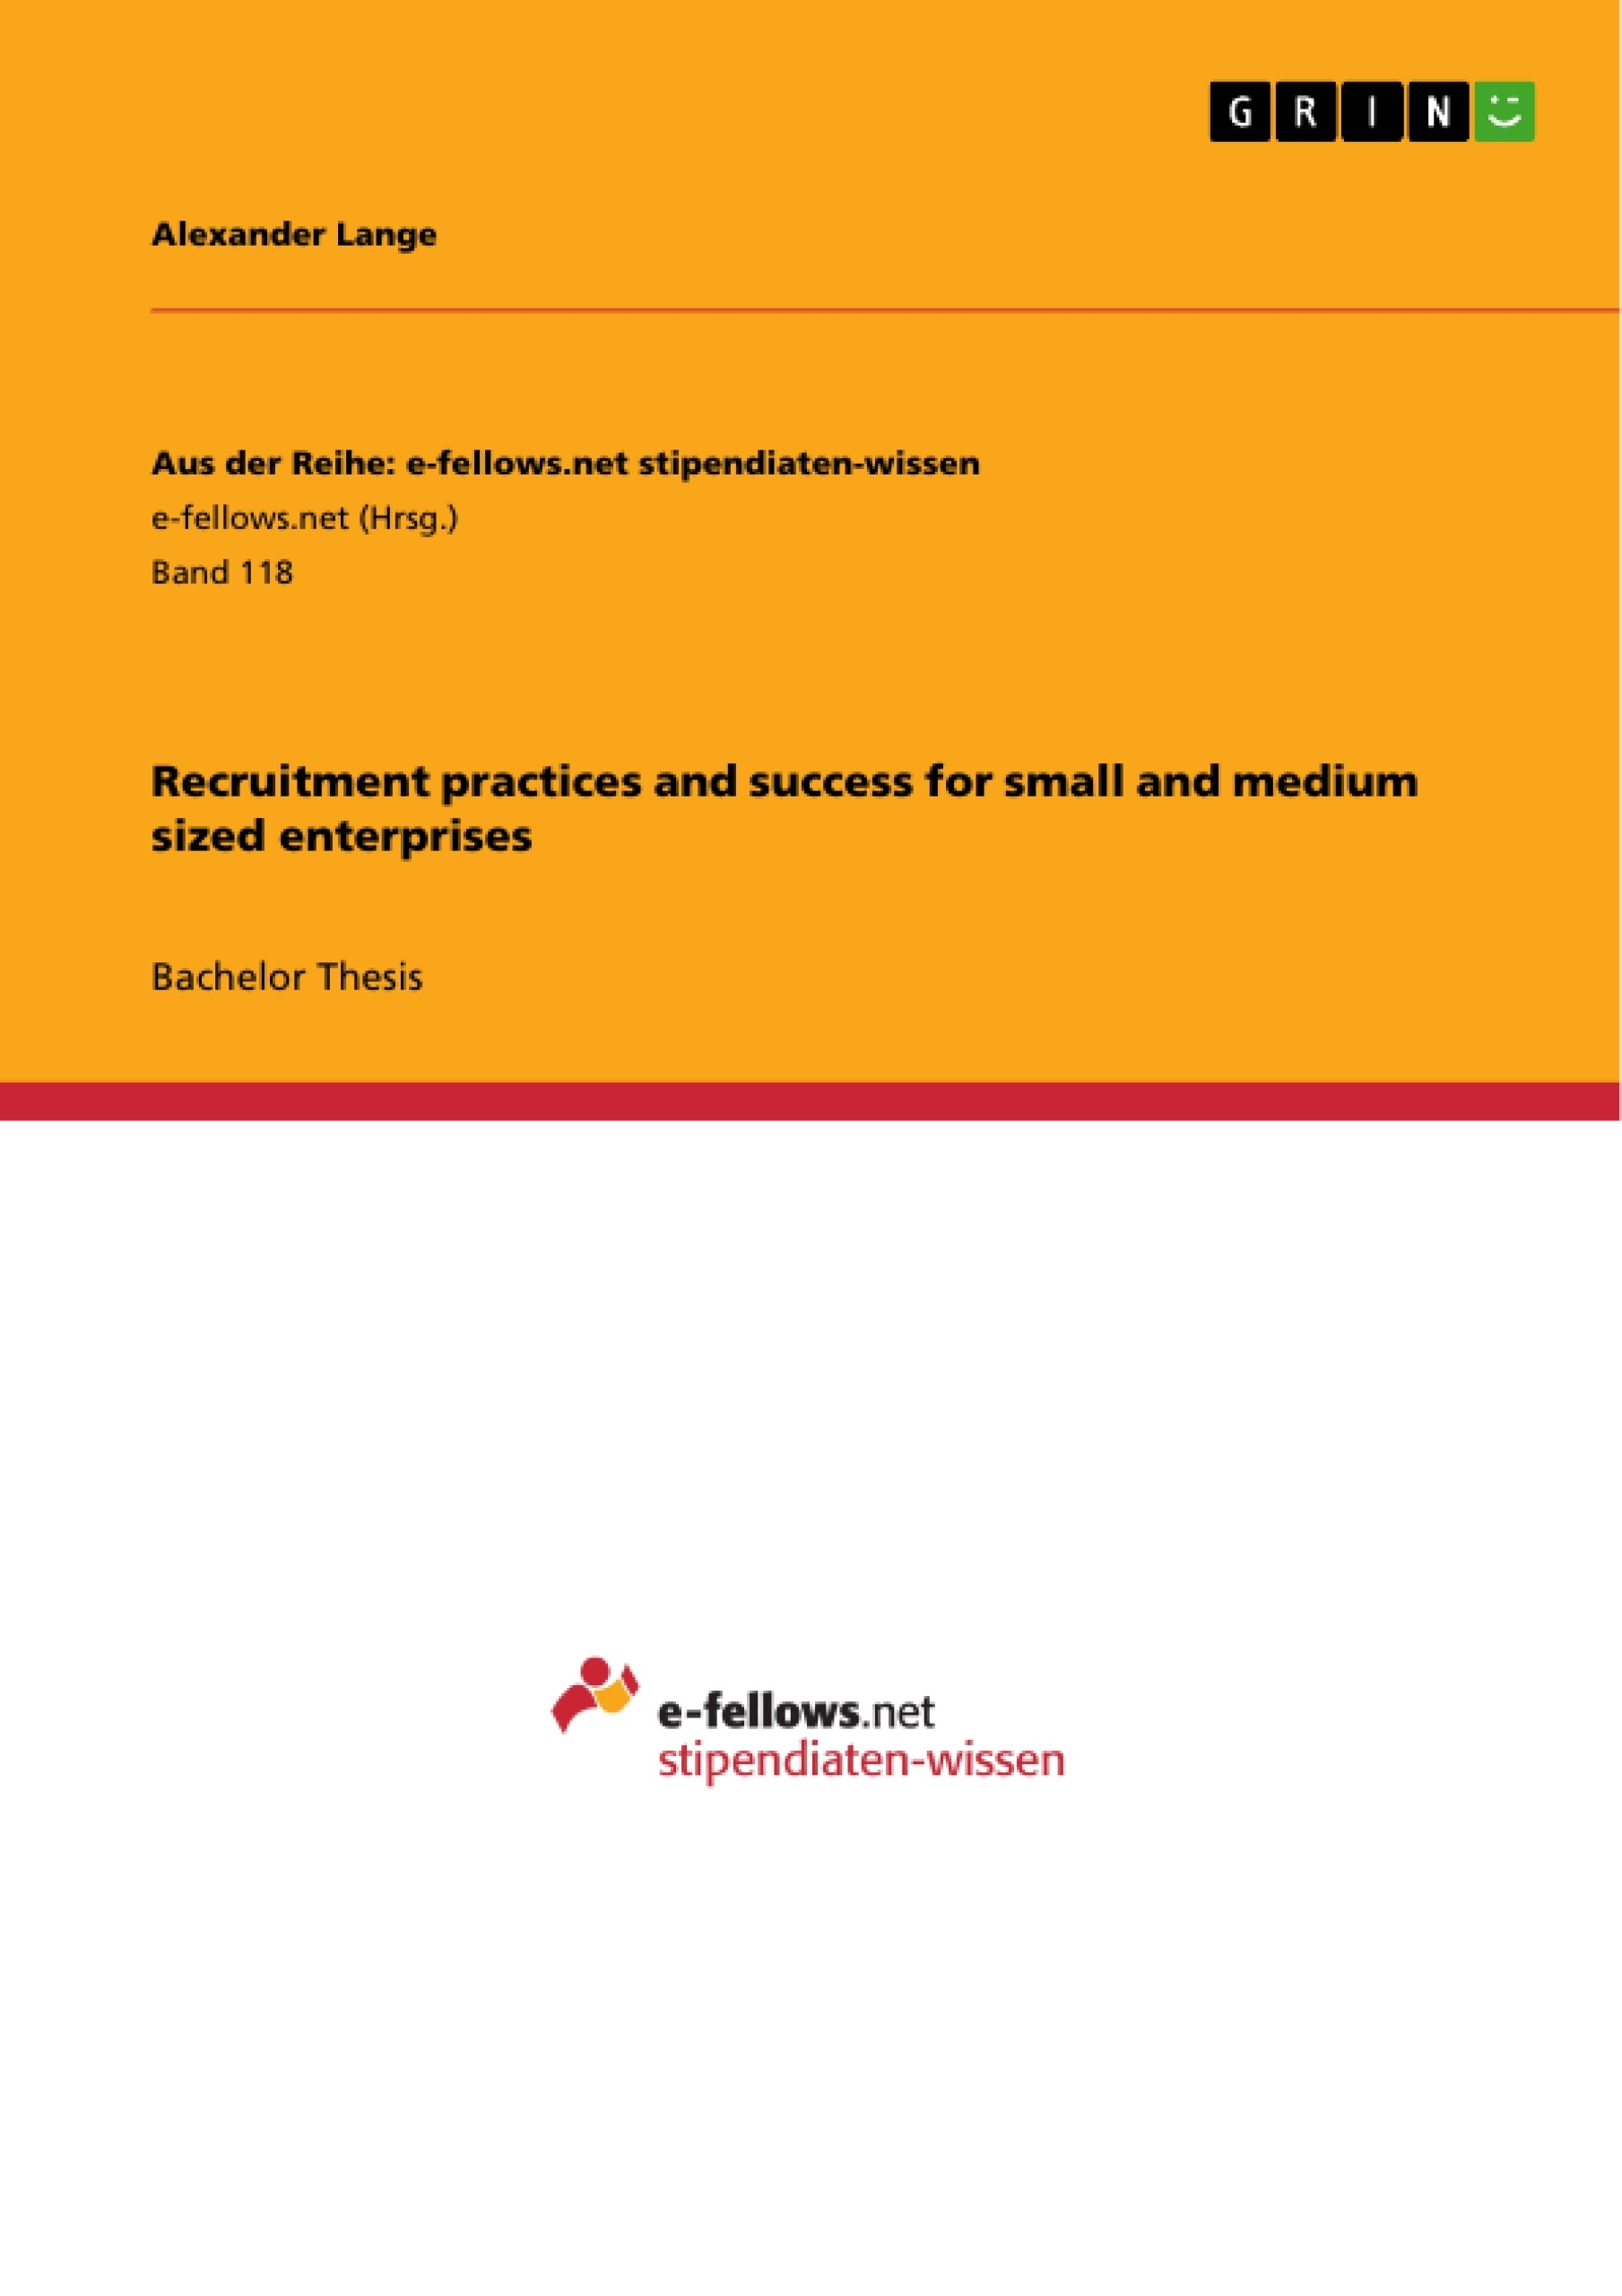 Title: Recruitment practices and success for small and medium sized enterprises